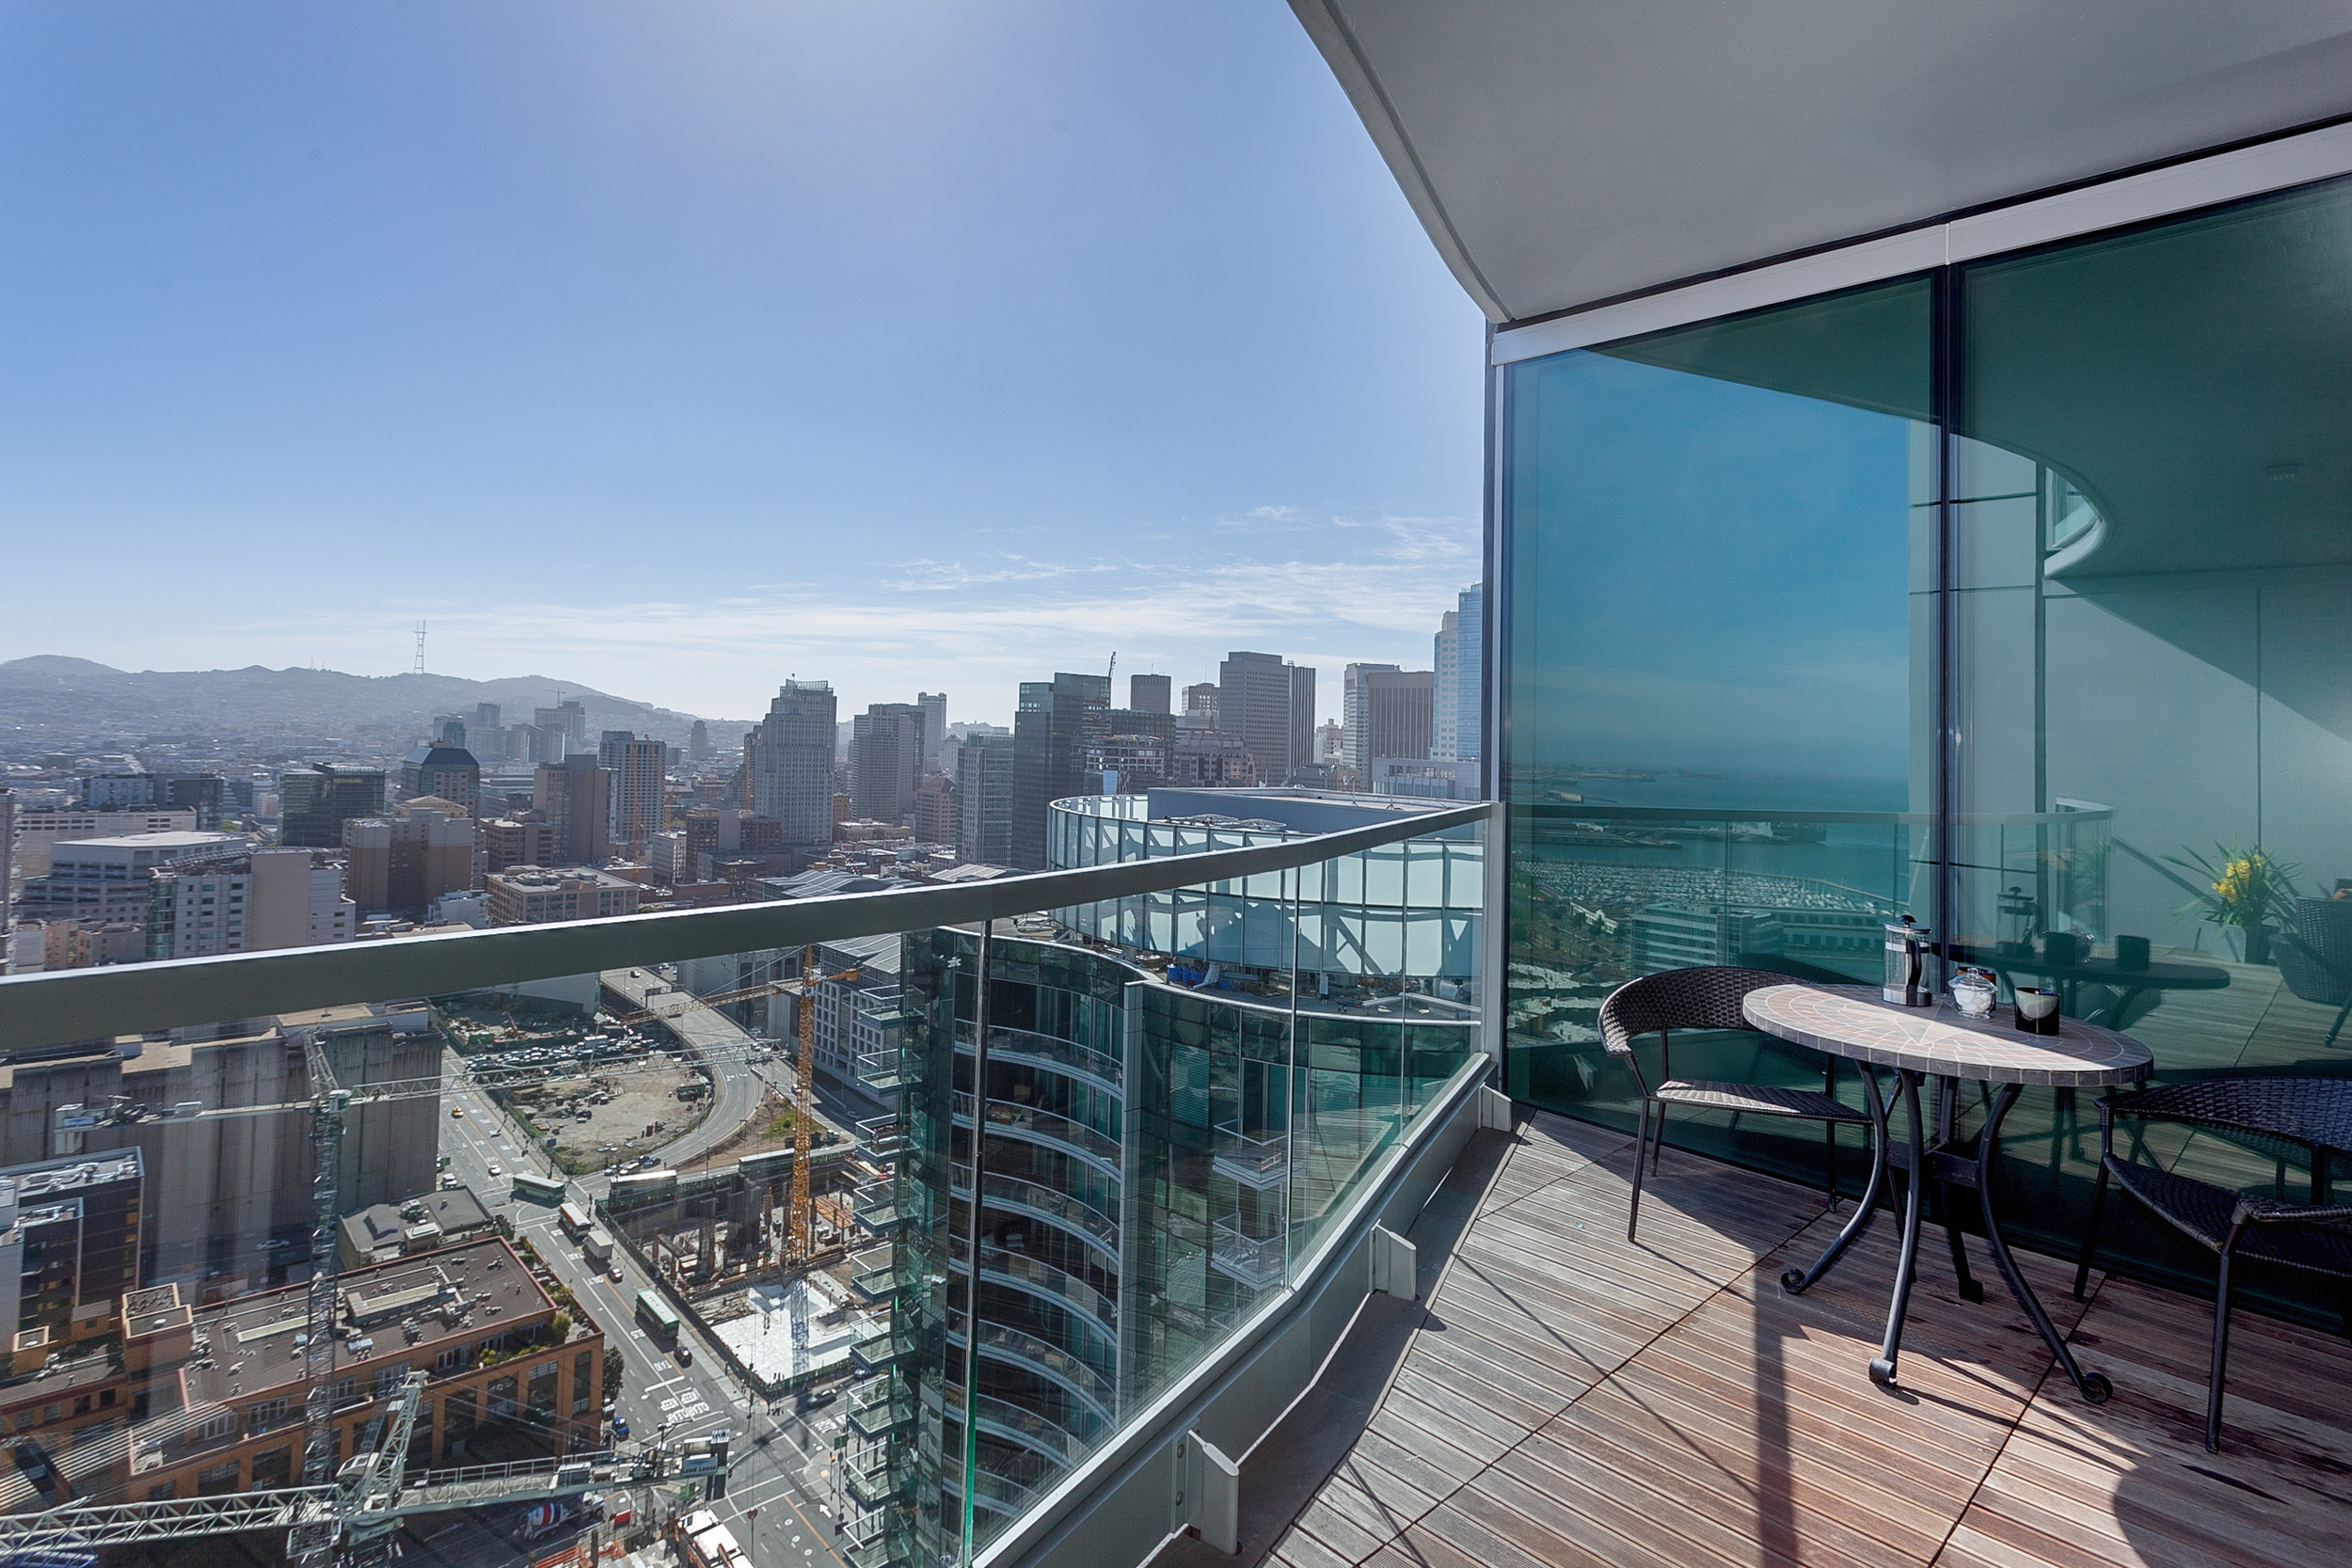 Sleek condominiums, many with balconies boasting great views, have sprouted up along the waterfront.